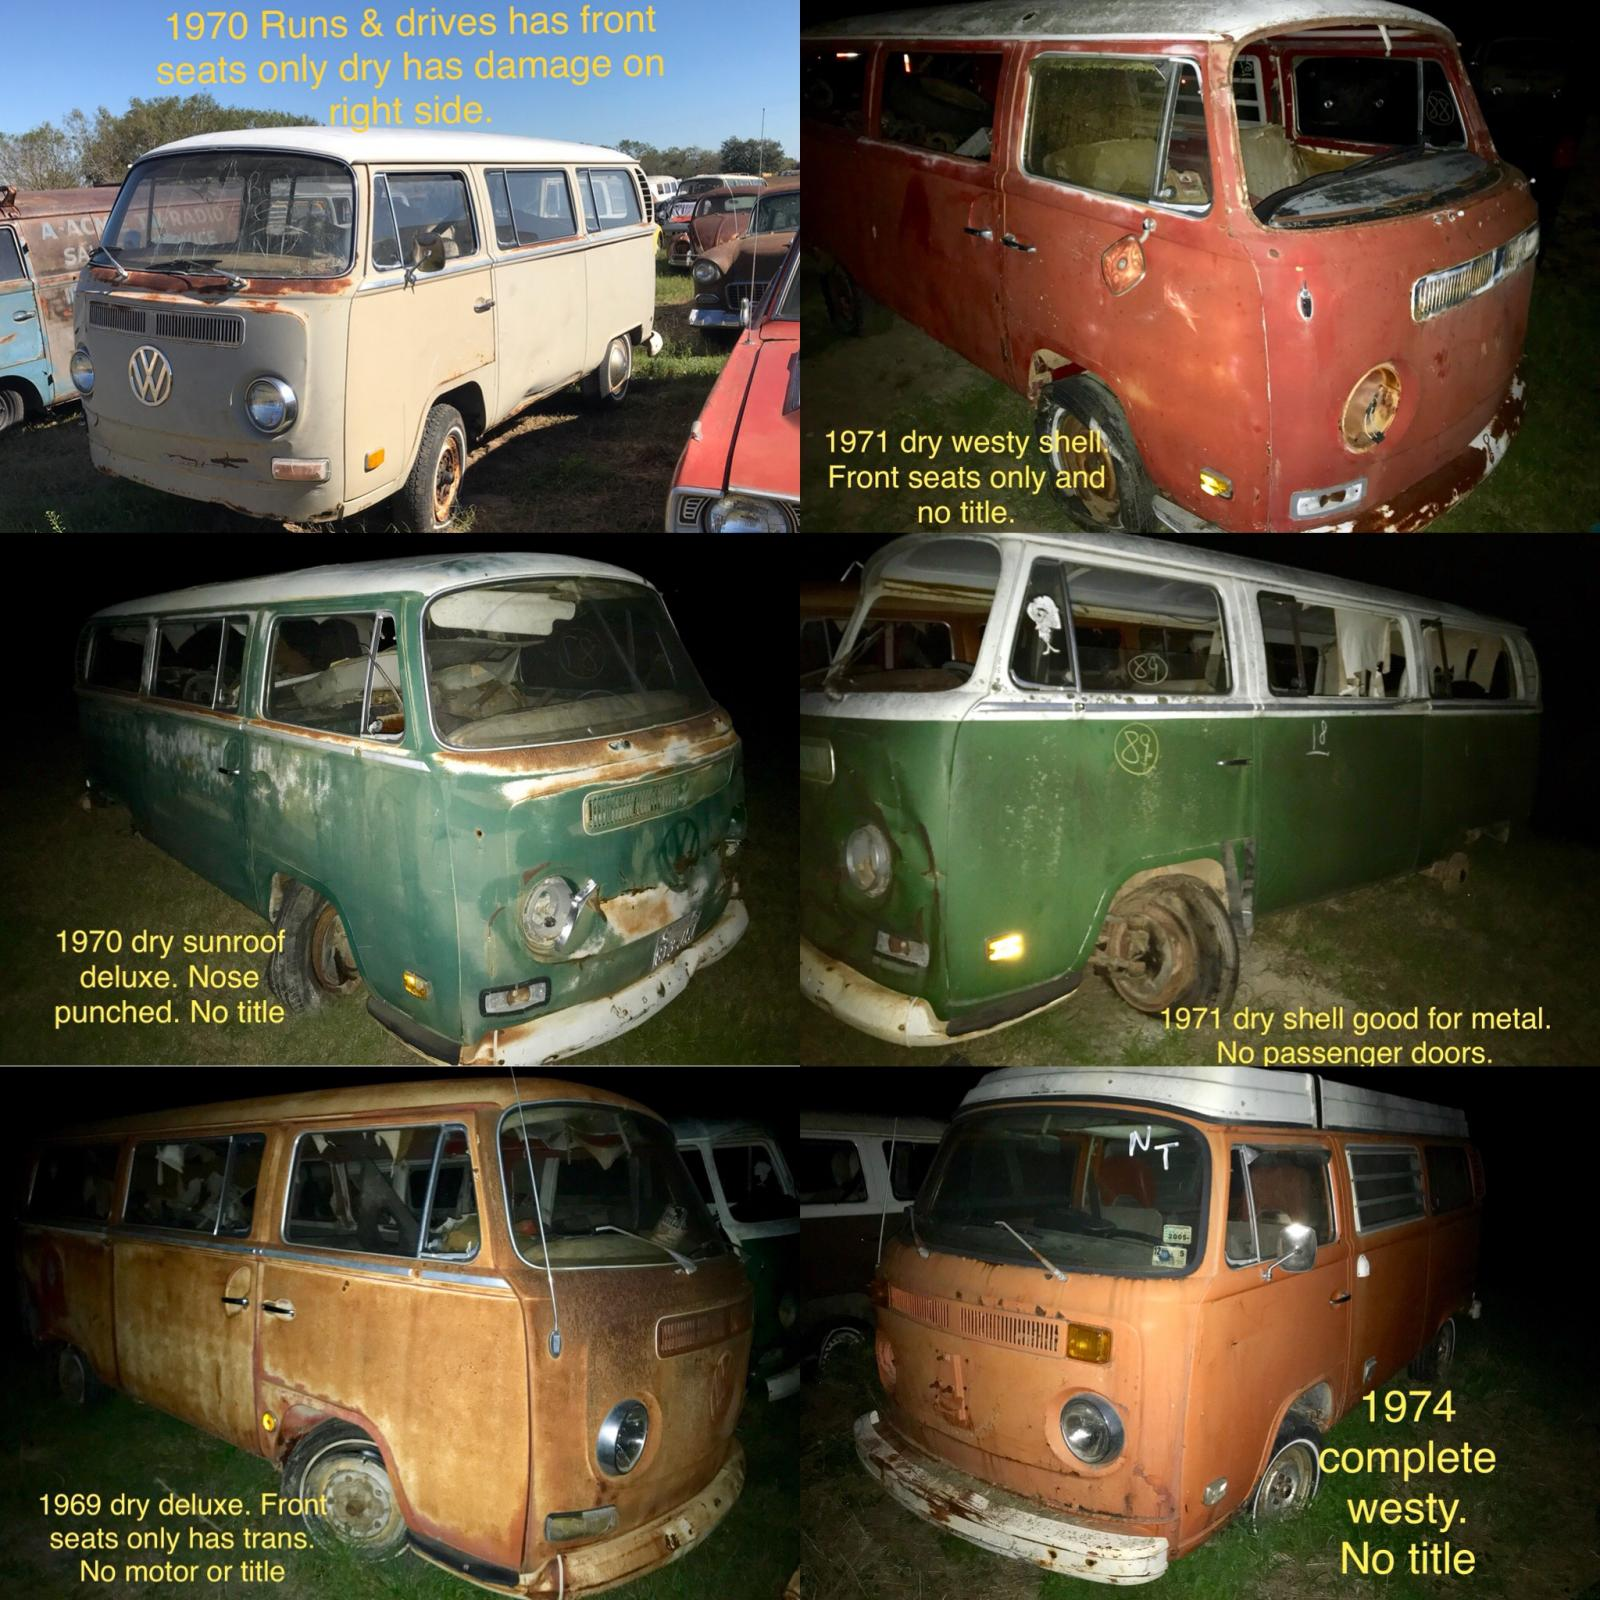 Texas Vintage Vdubs getting some bay buses ready to post.